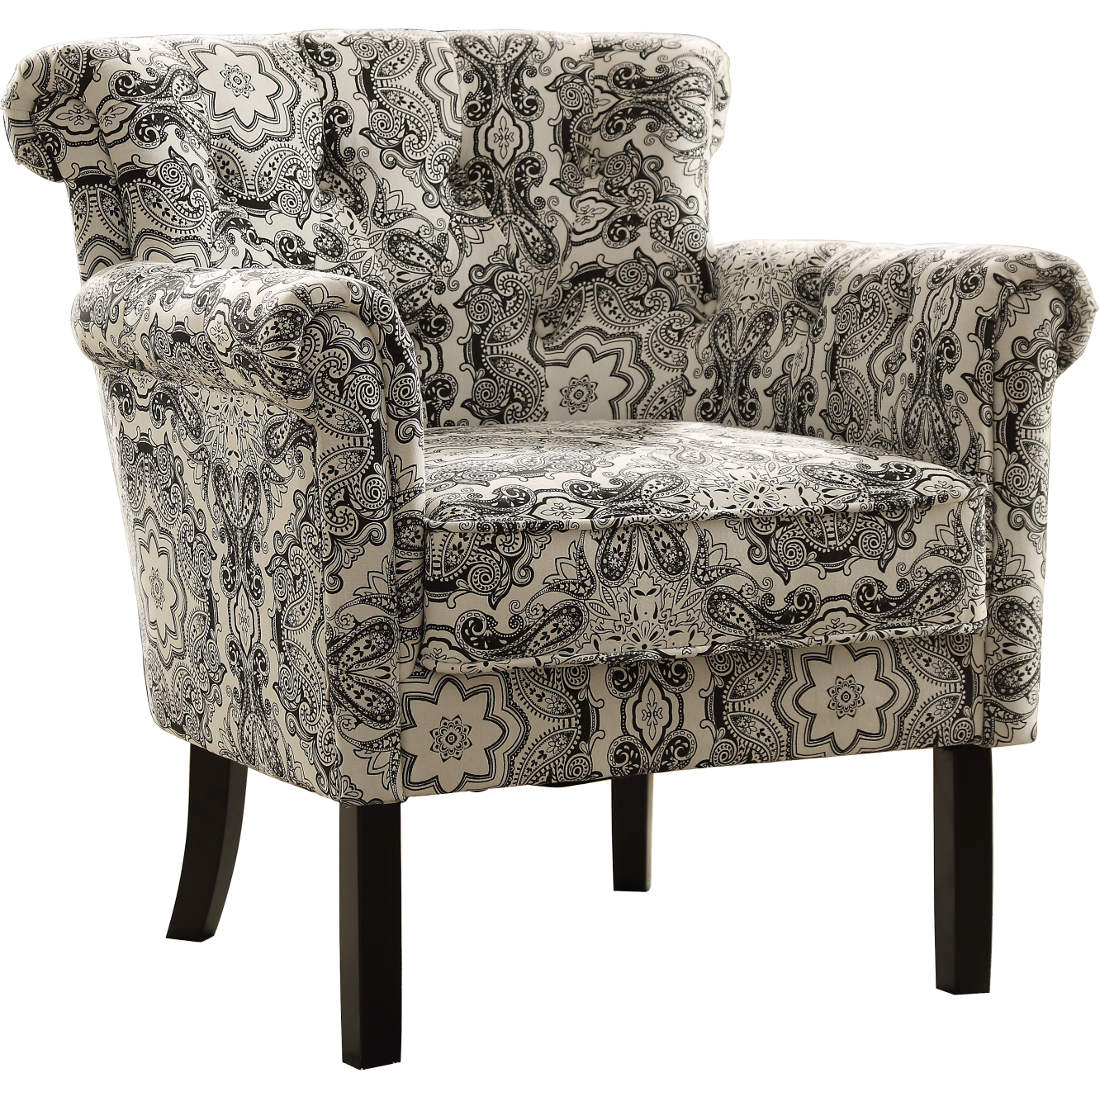 Paisley Chair Homelegance Barlowe Accent Chair In Paisley Print